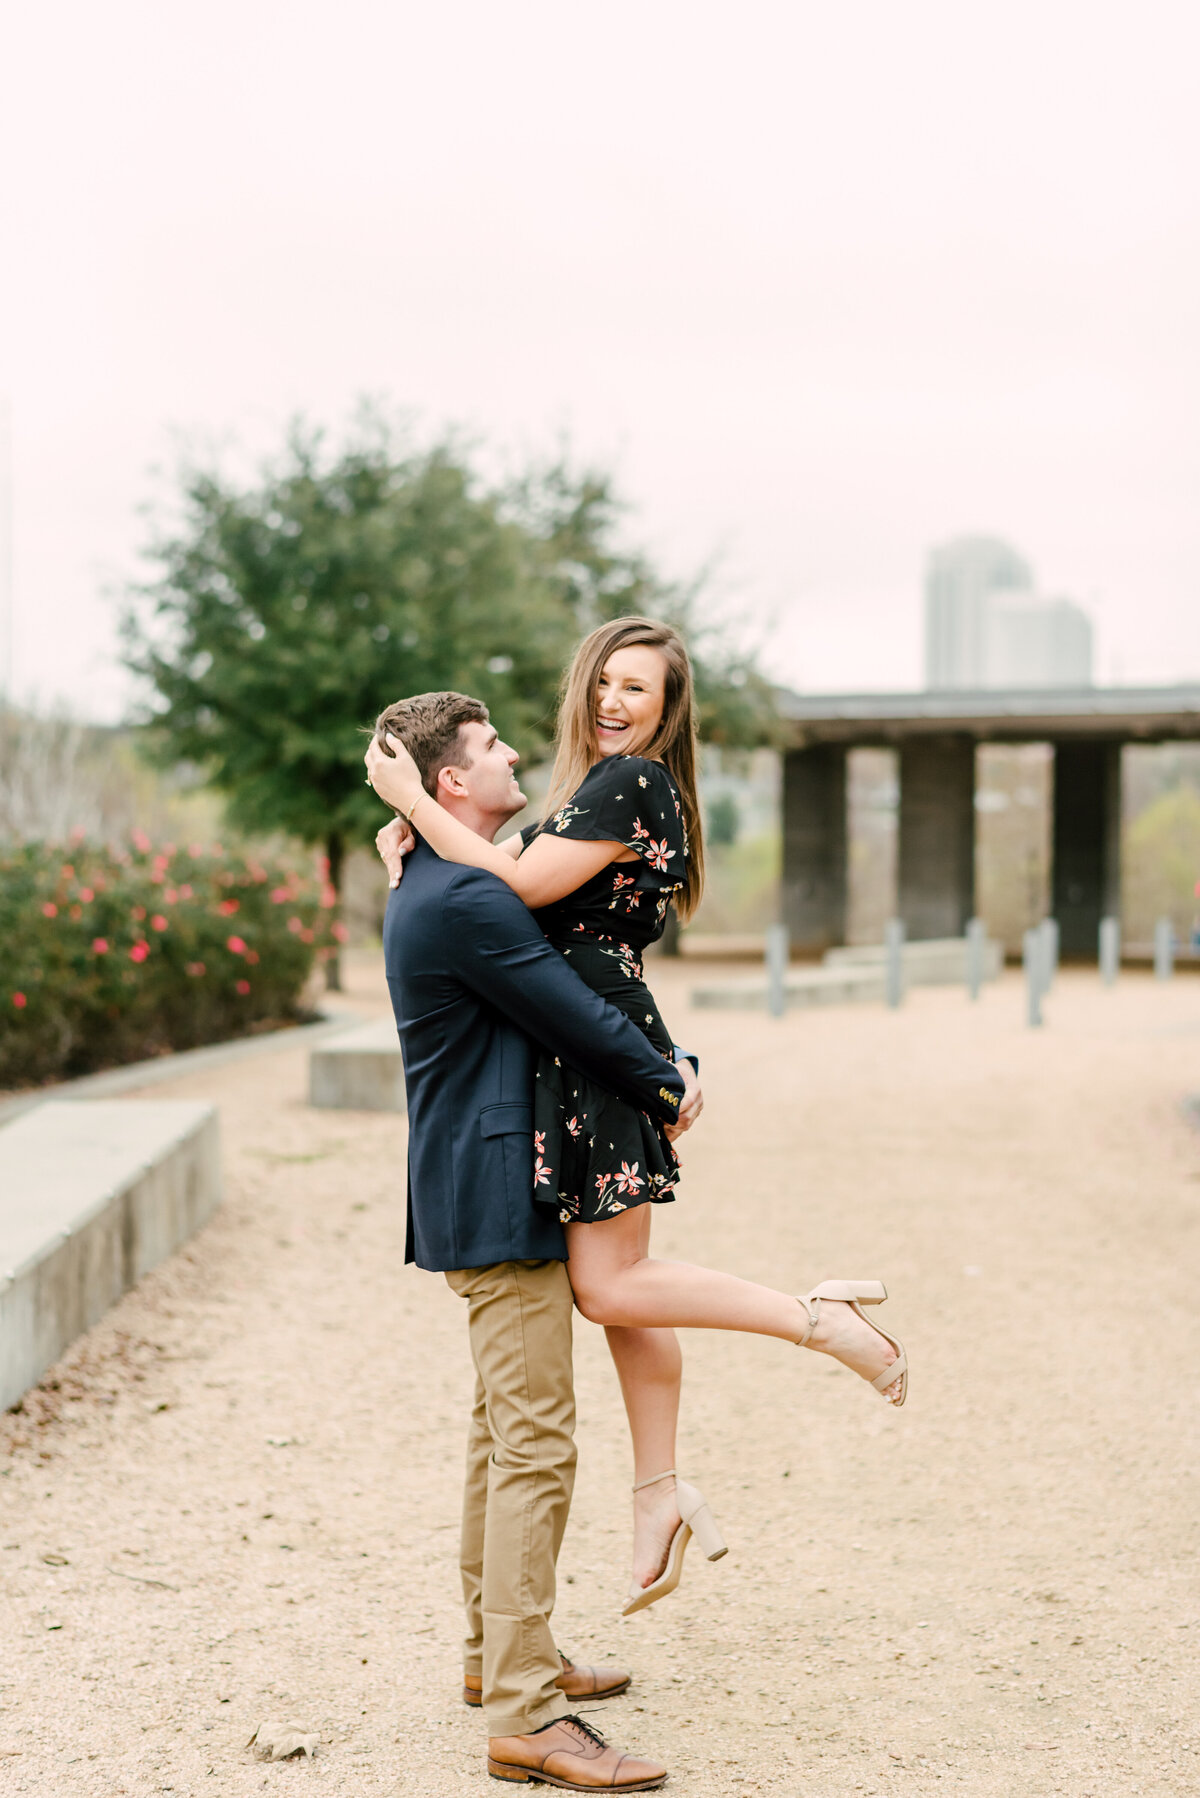 Houston-Engagement-Photographer-Dentyn-Sarah-20200117-0206